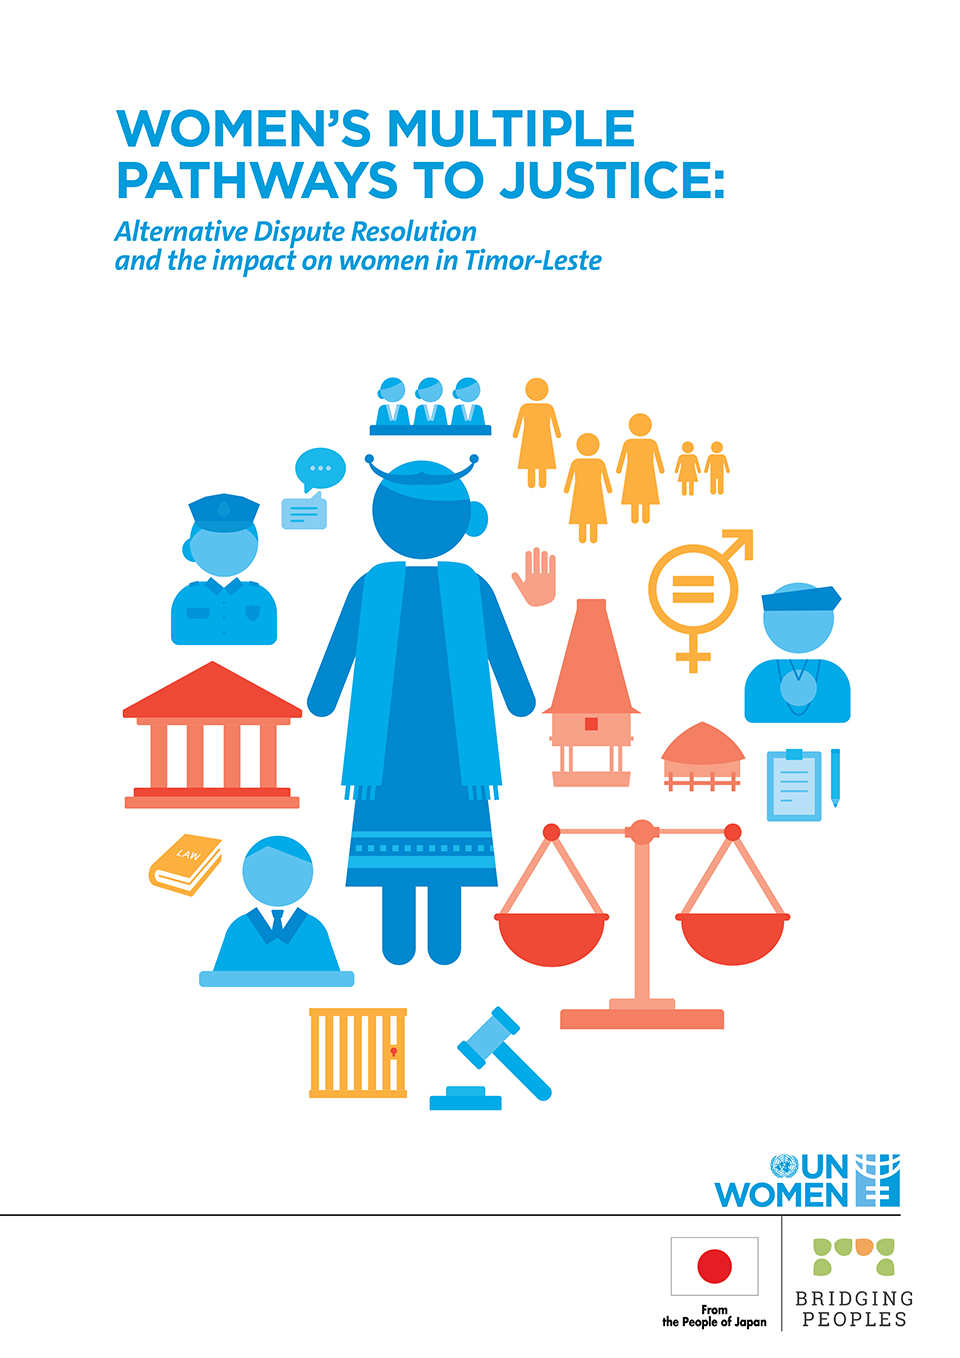 Women's Multiple Pathways to Justice in Timor-Leste: